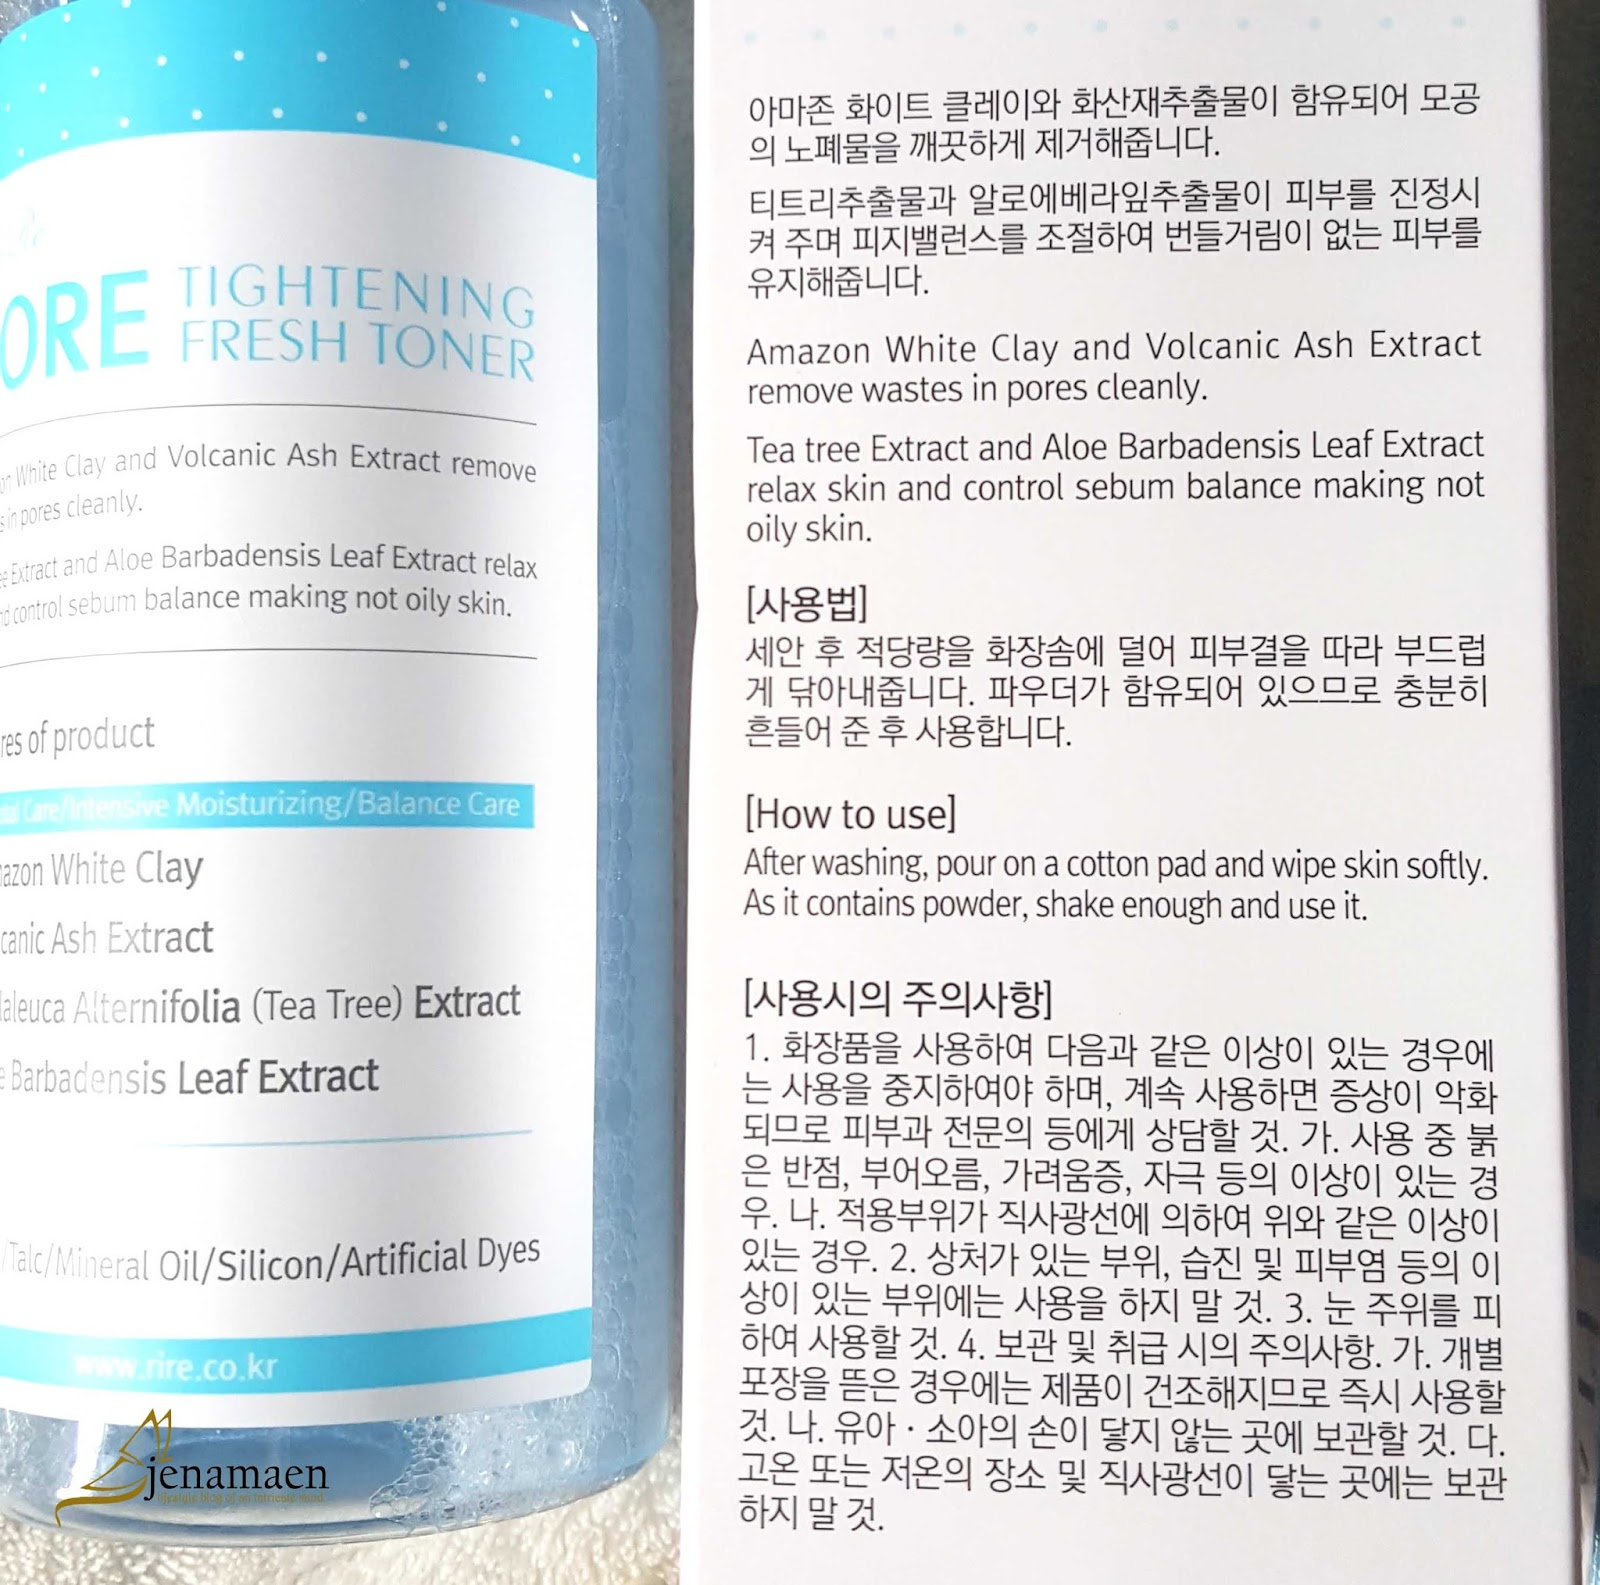 Review: RiRe Pore Tightening Fresh Toner